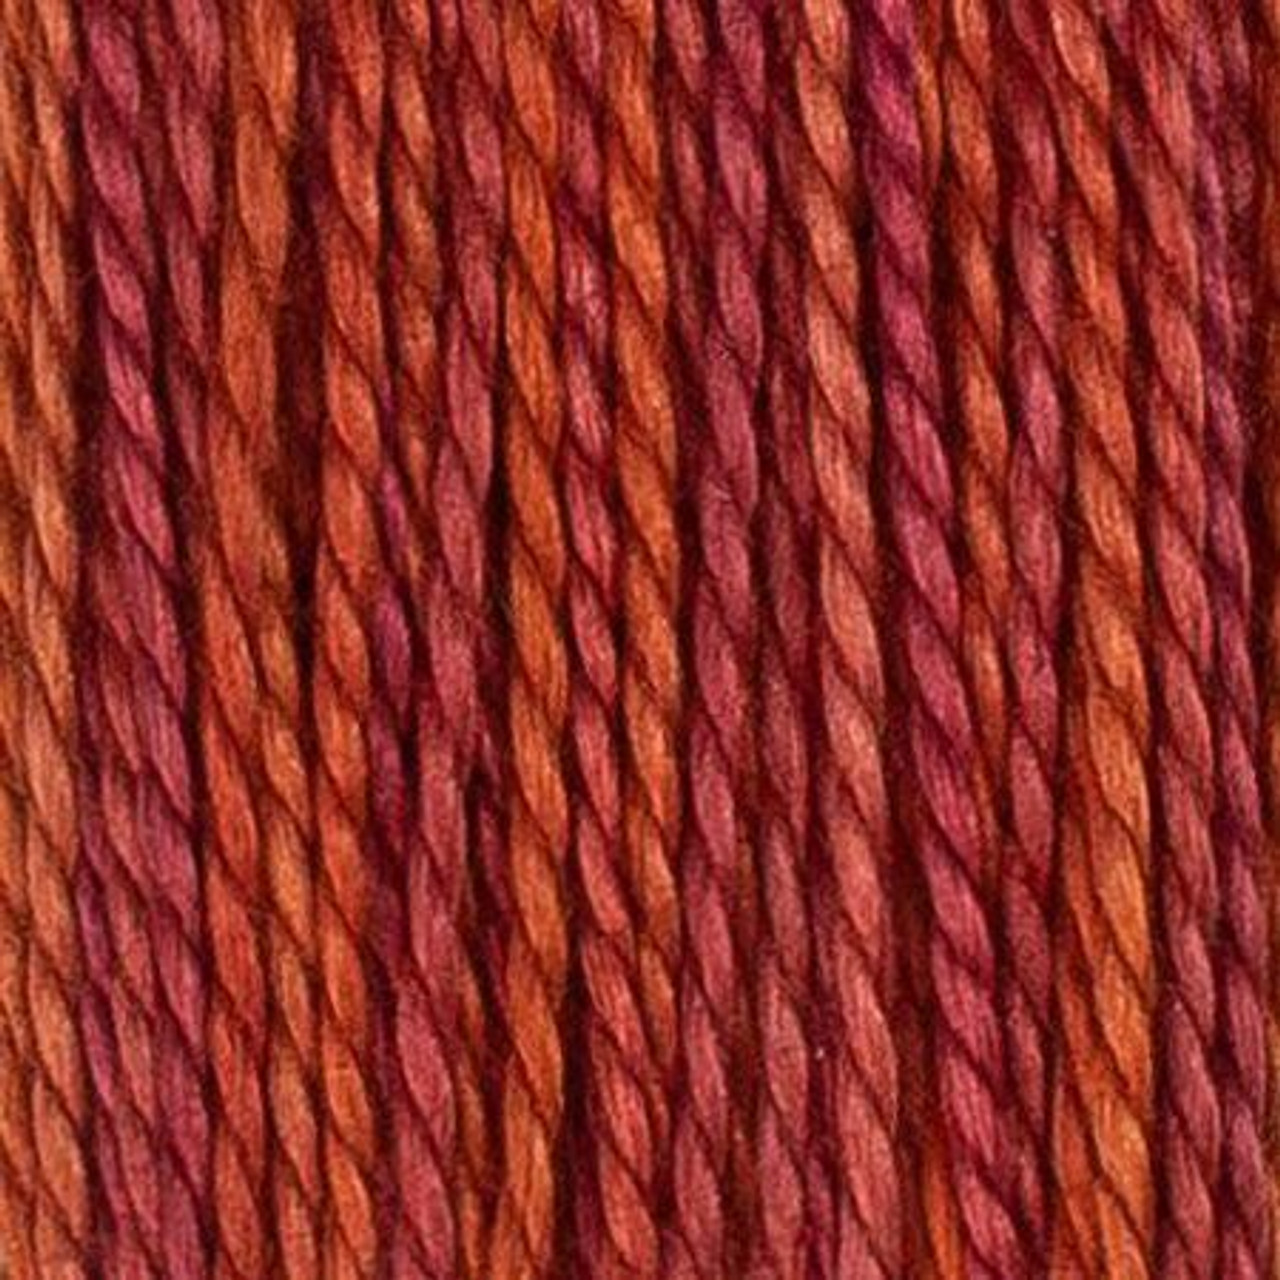 House of Embroidery : 8wt Perle Cotton - Aster (19A)